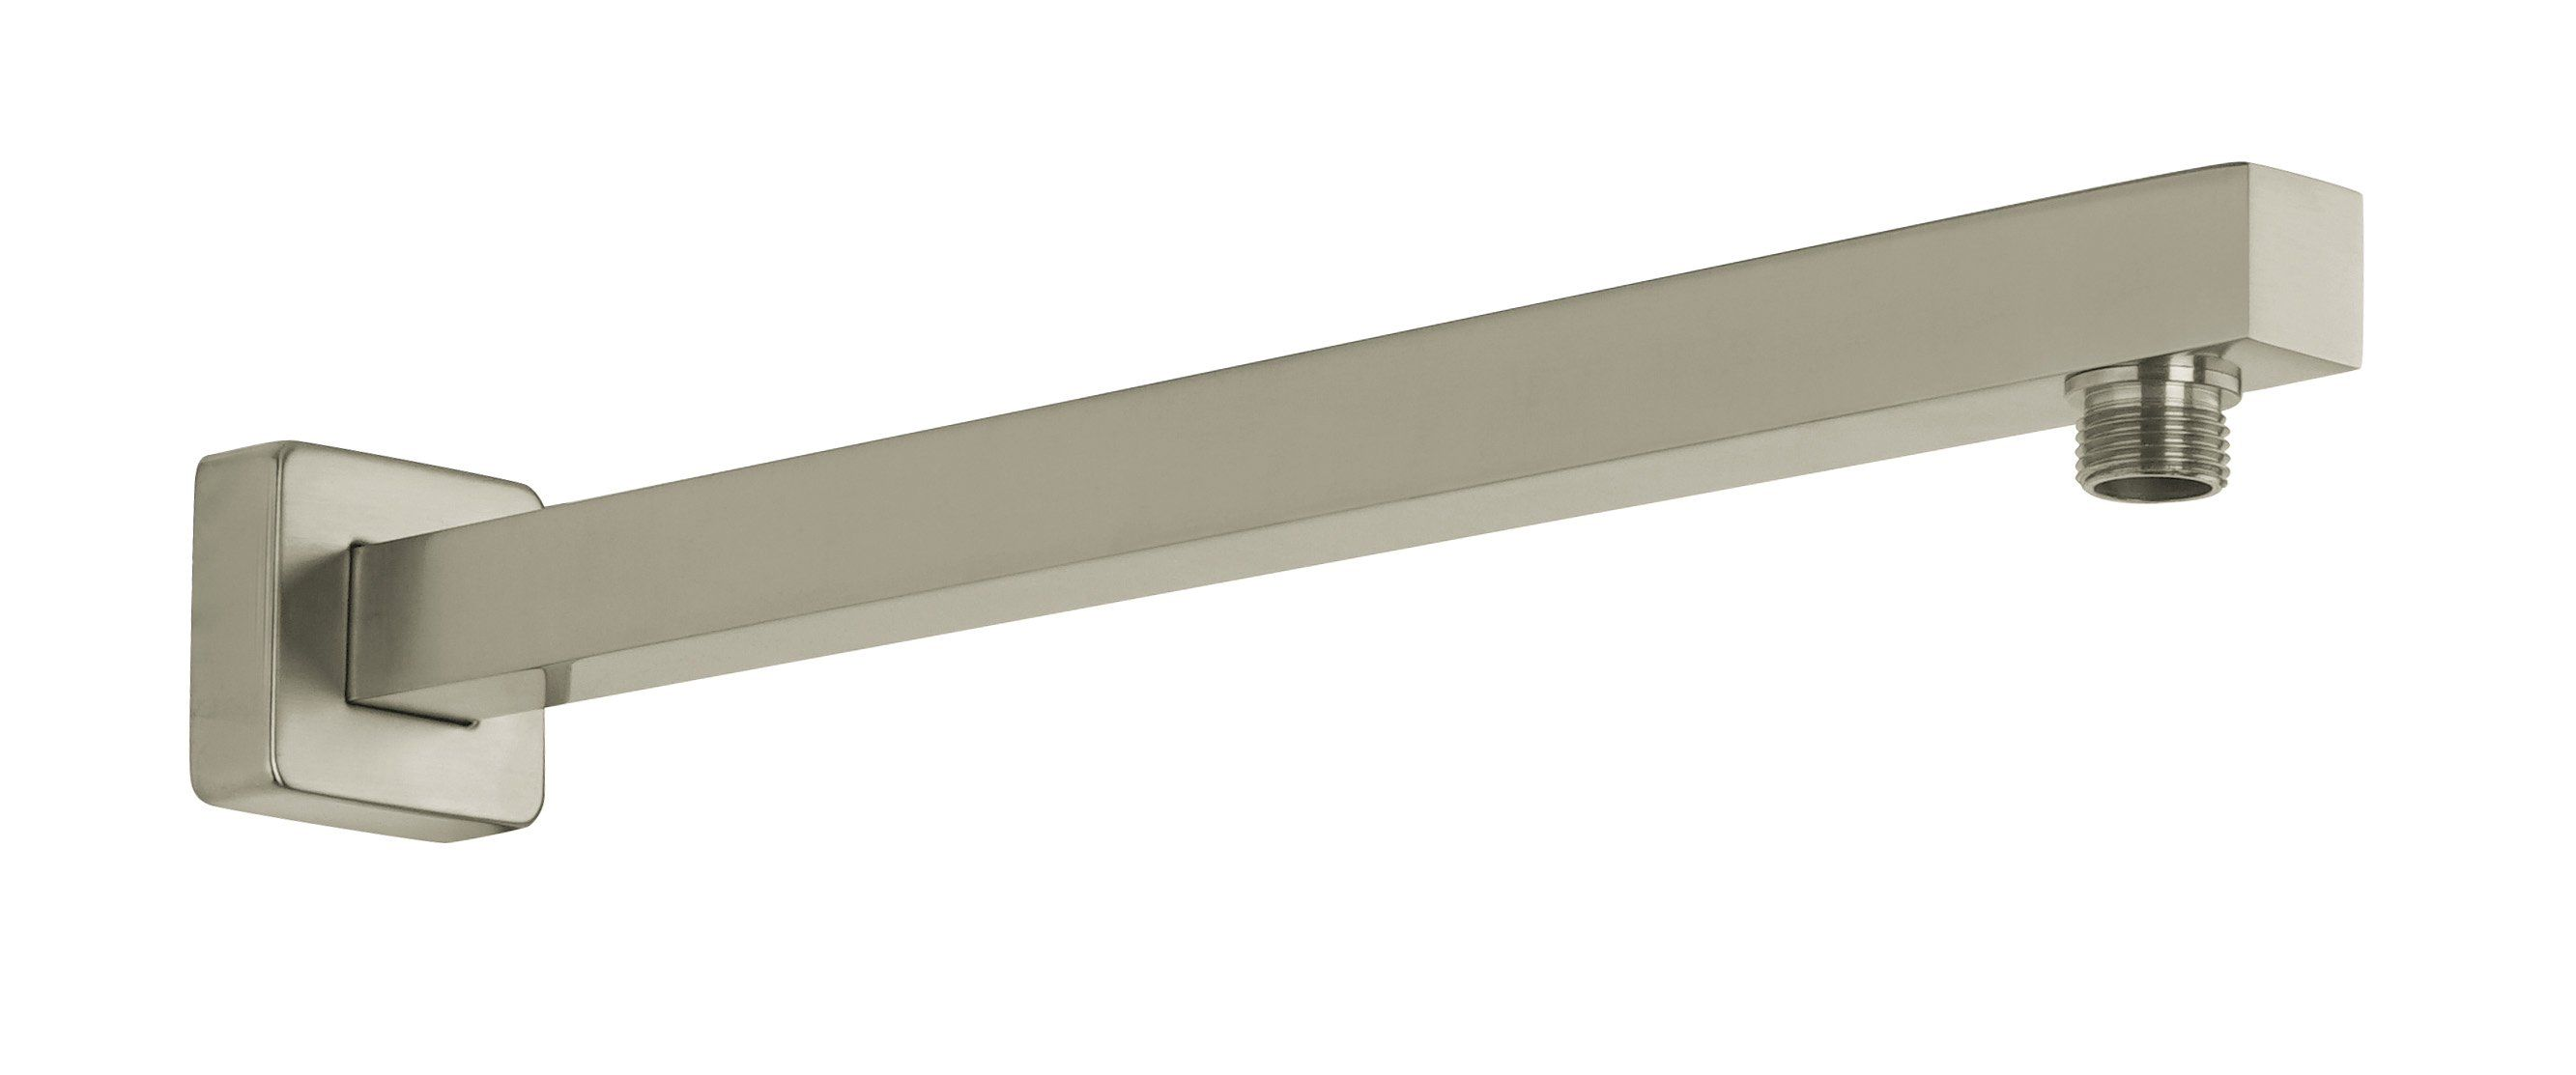 Latoscana Wall Mounted Shower Arm With Strengthened Fixing Brushed Nickel Shower Arm Shower Decorating Blogs